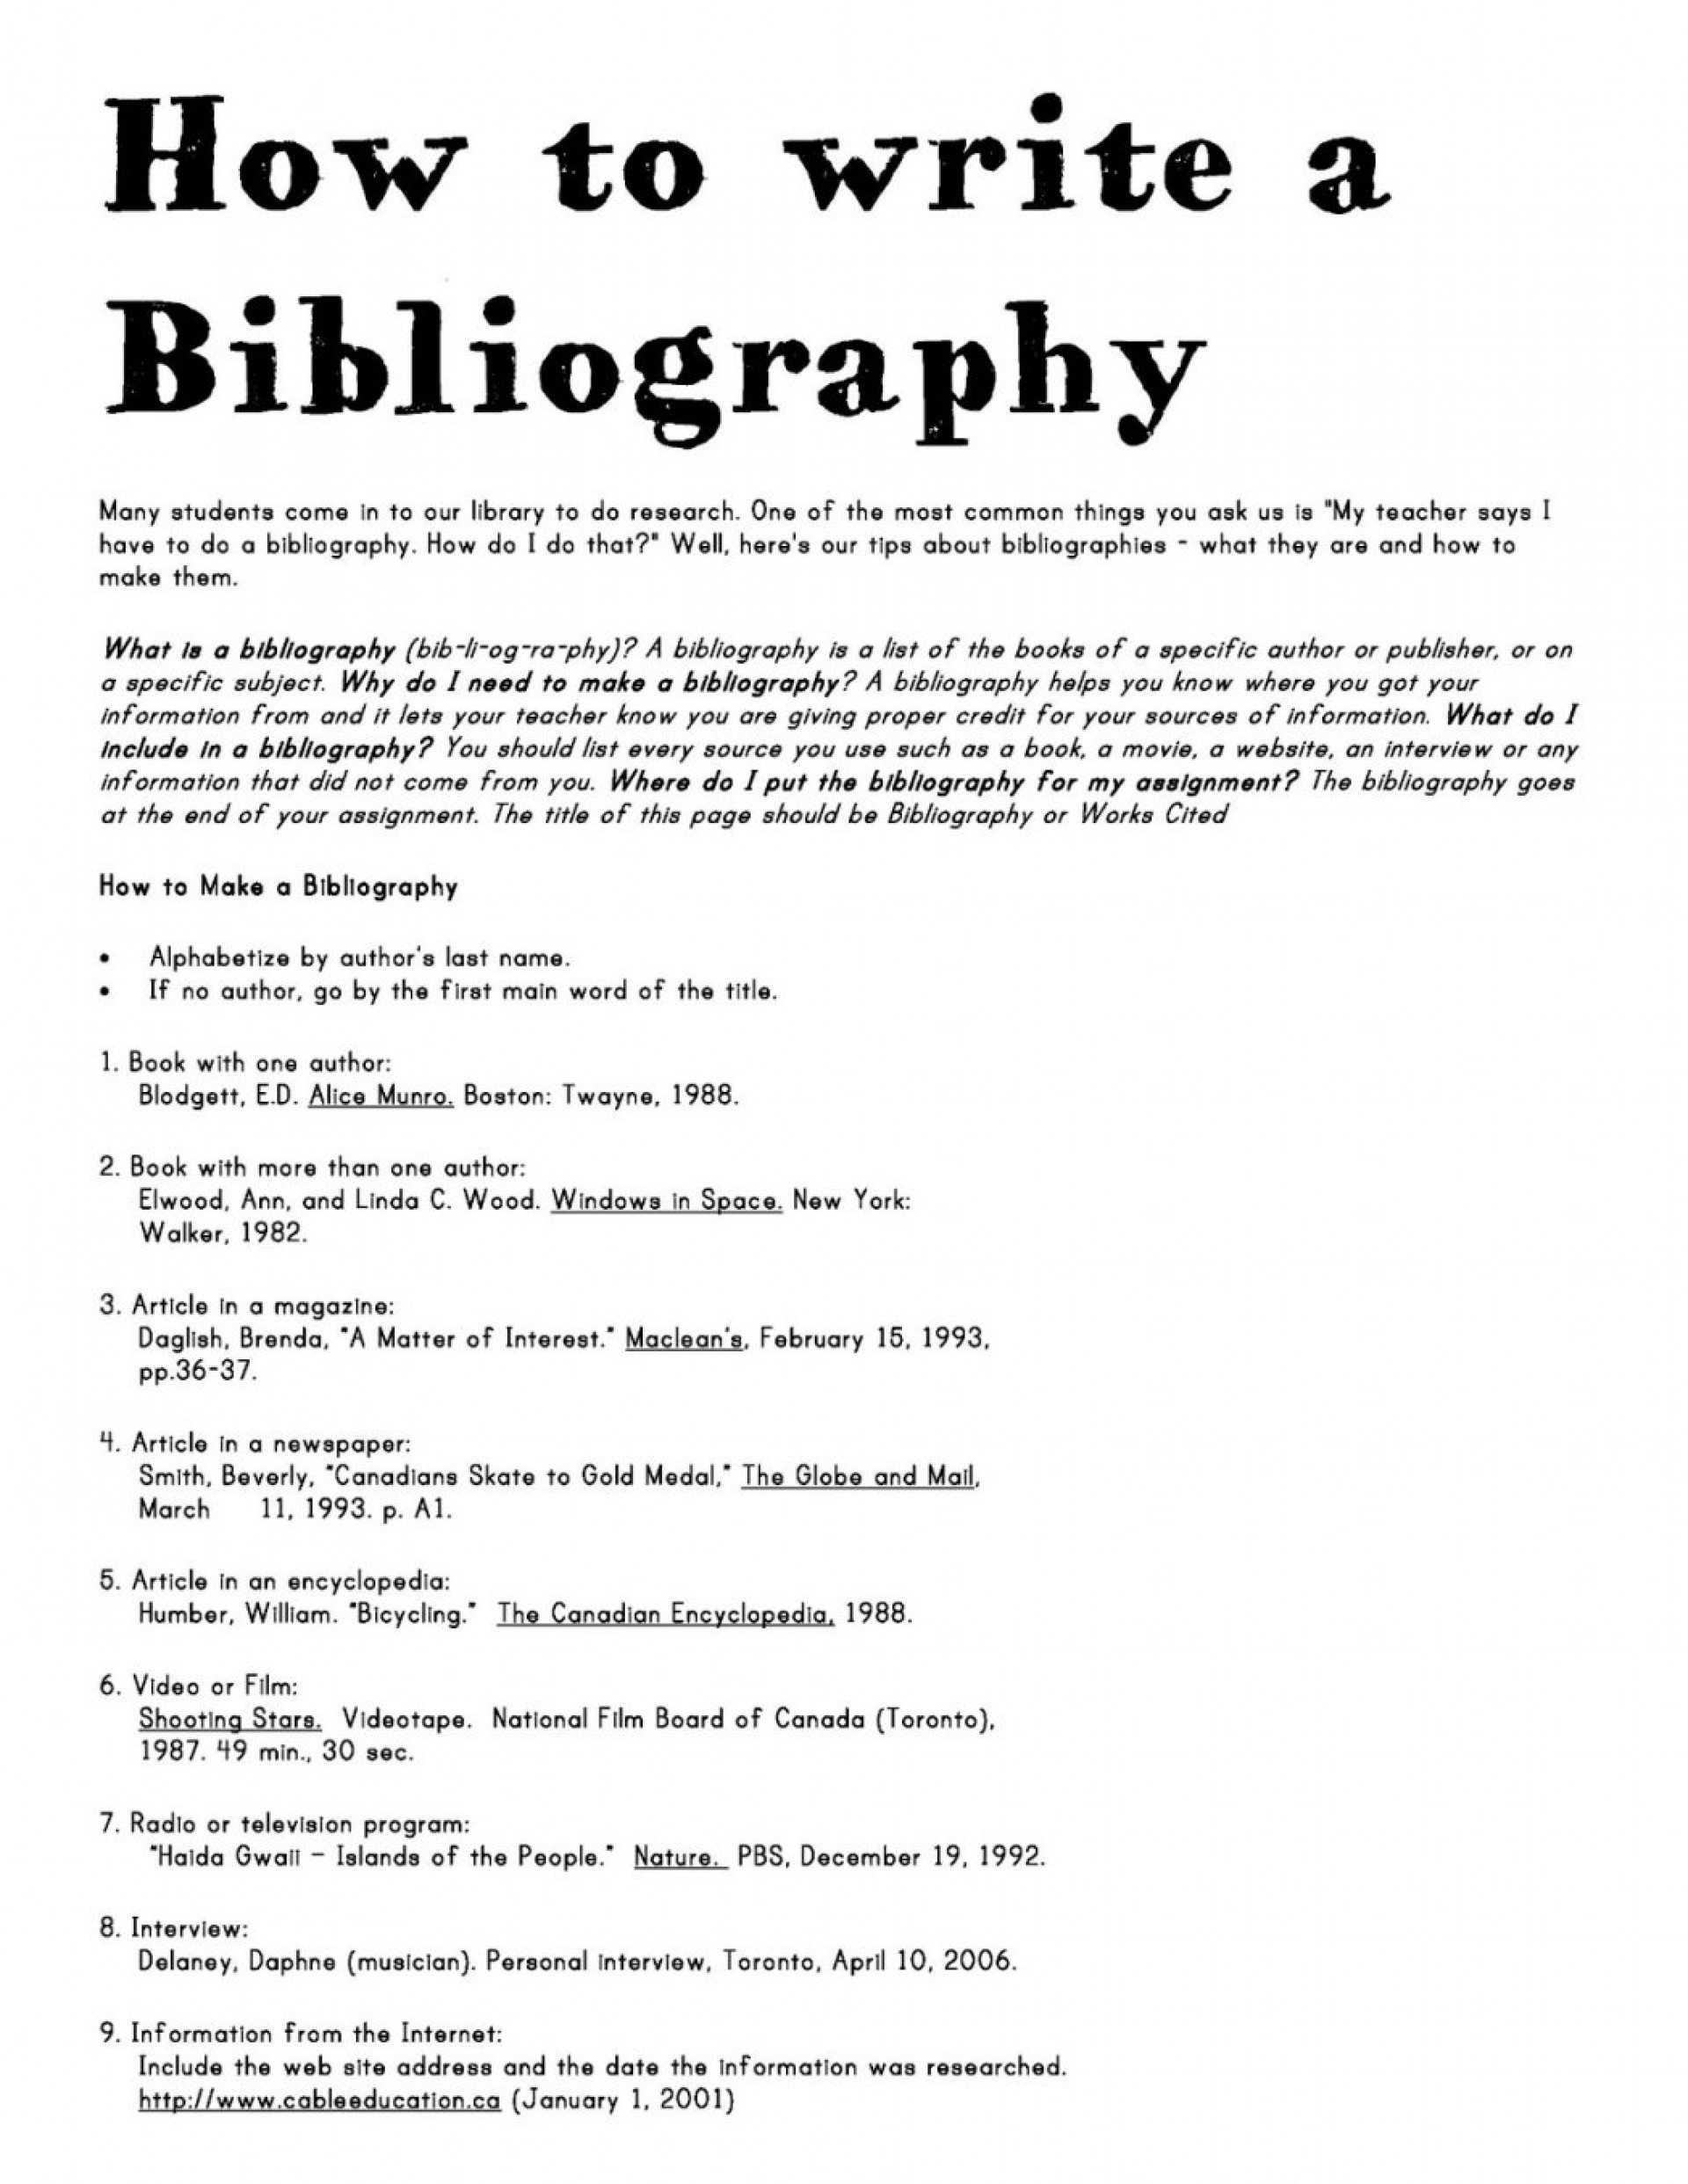 017 Njhs Essay Bibliographics Template How To Write An National Junior Honor Society Topics P 1048x1356 Remarkable Ideas Samples Prompt 1920